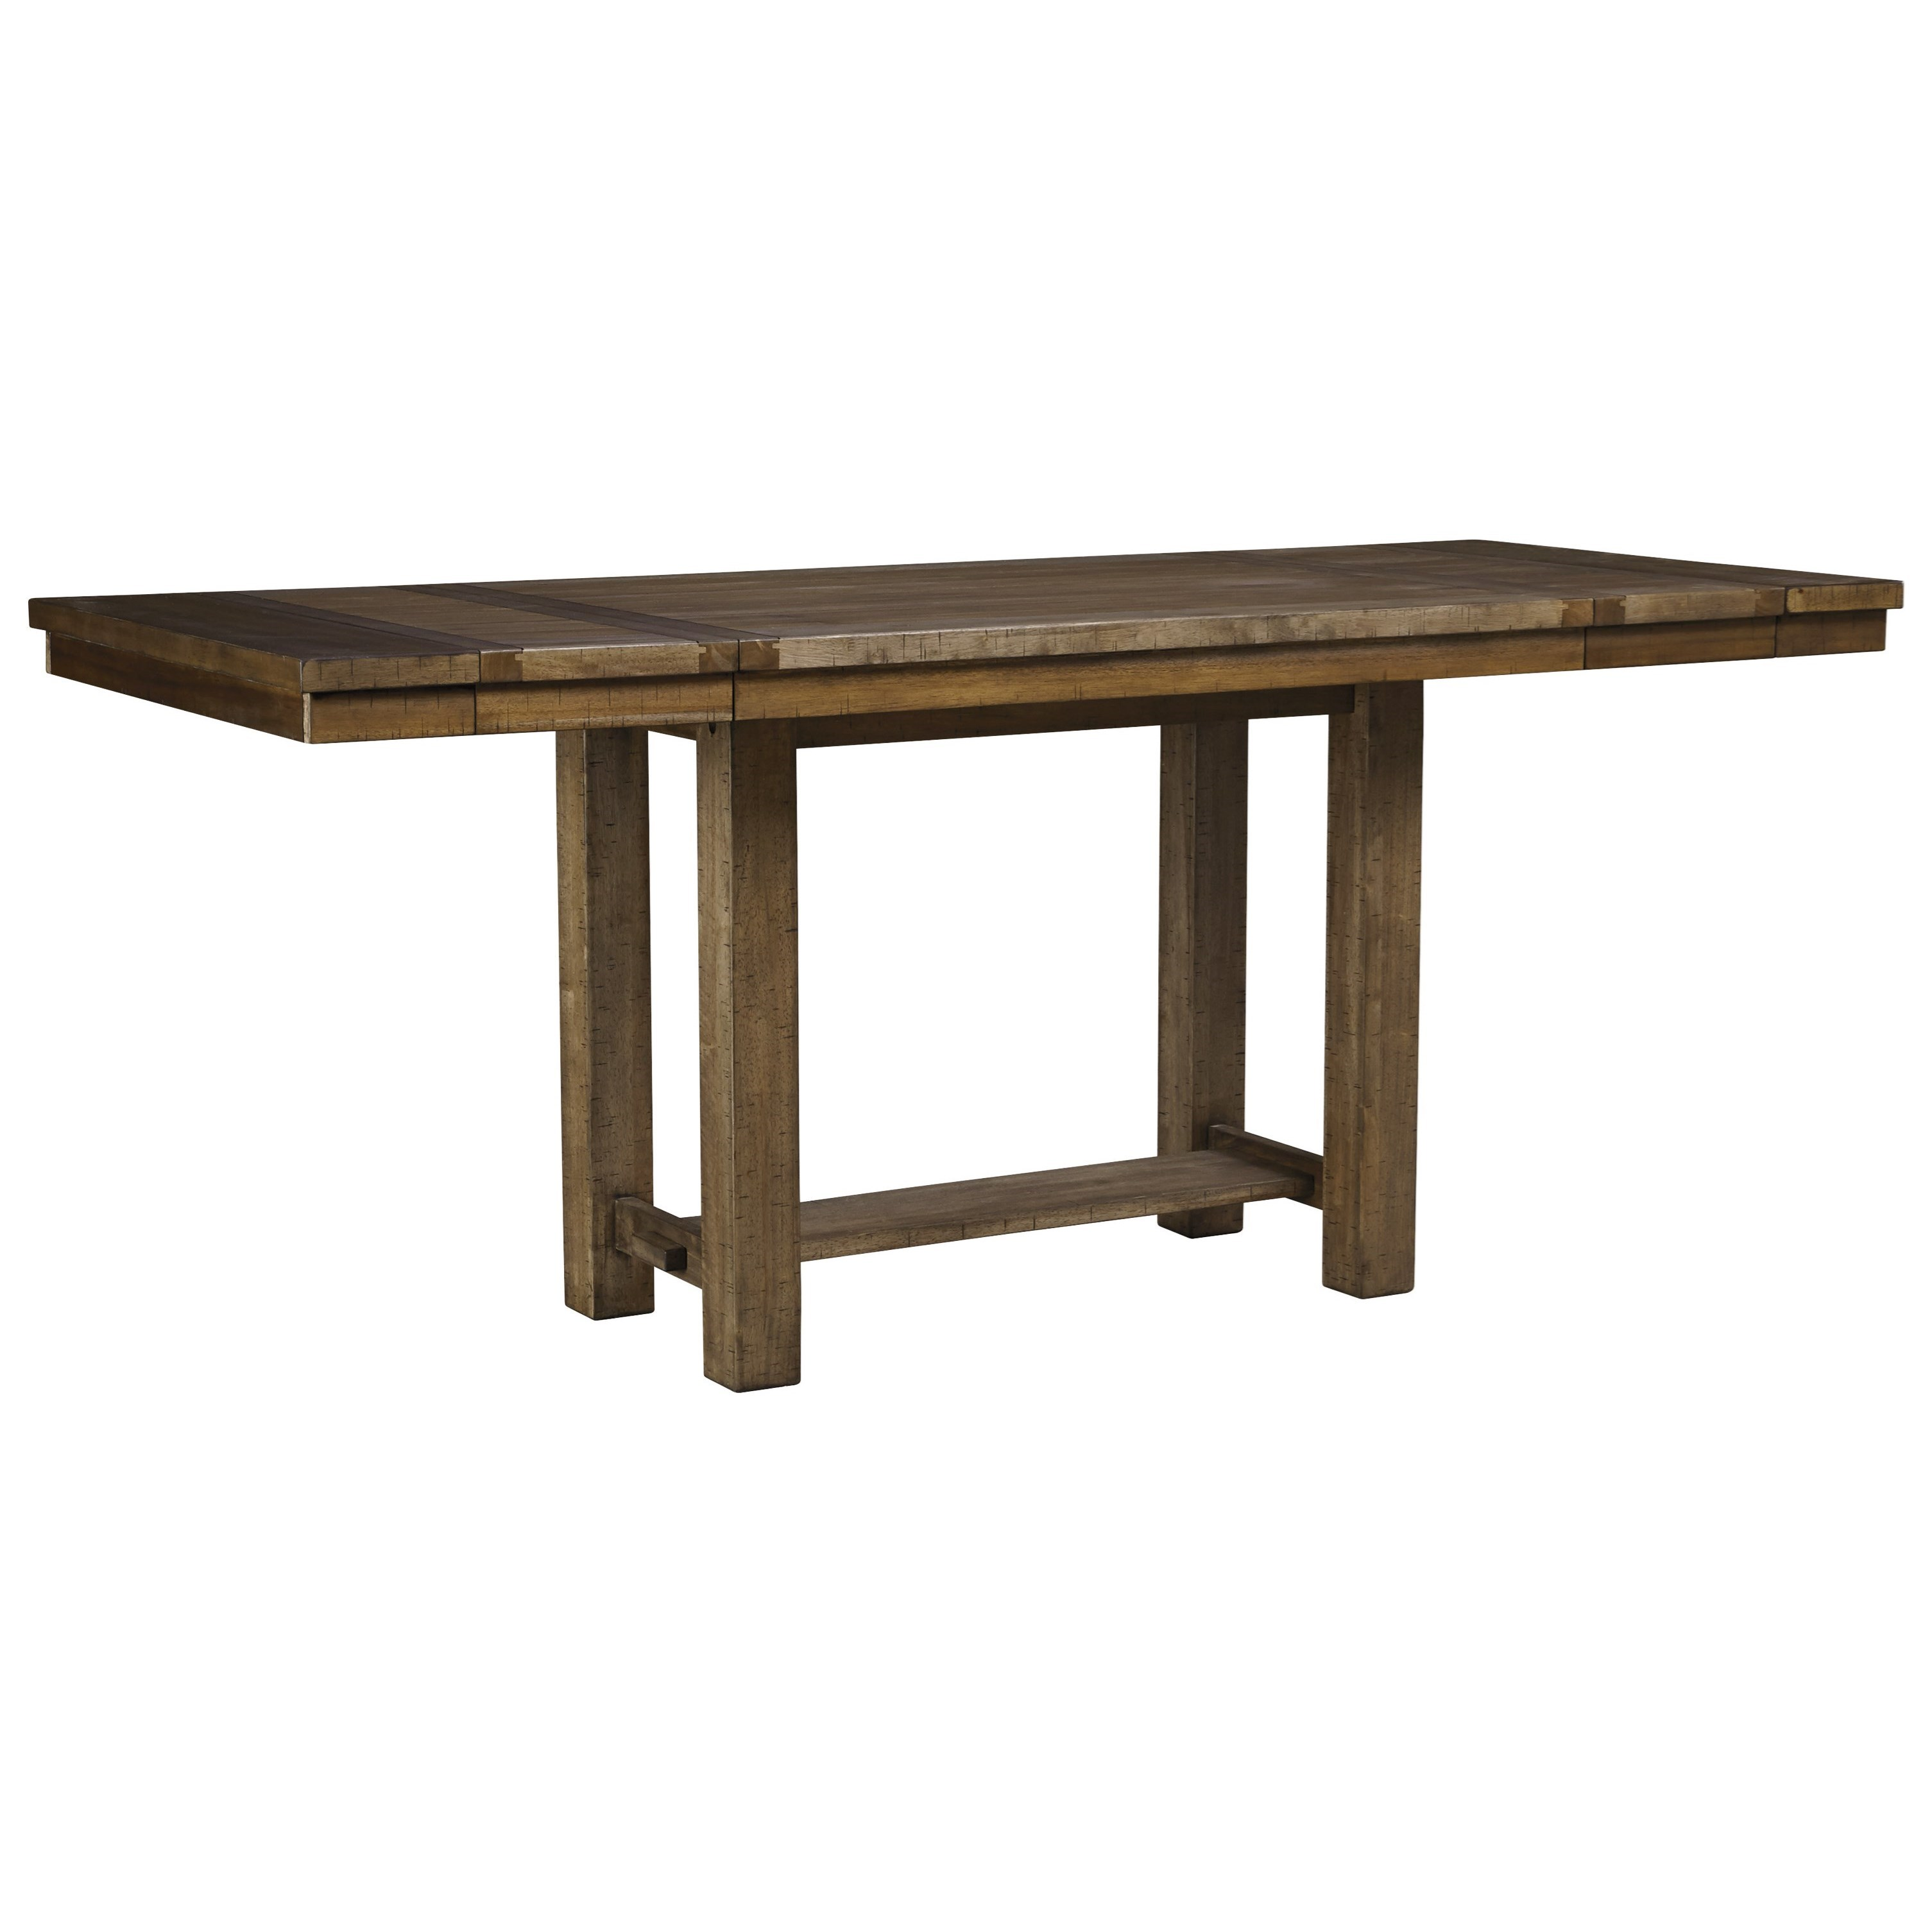 Moriville Rect. Dining Room Counter Extension Table by Signature Design by Ashley at Beck's Furniture